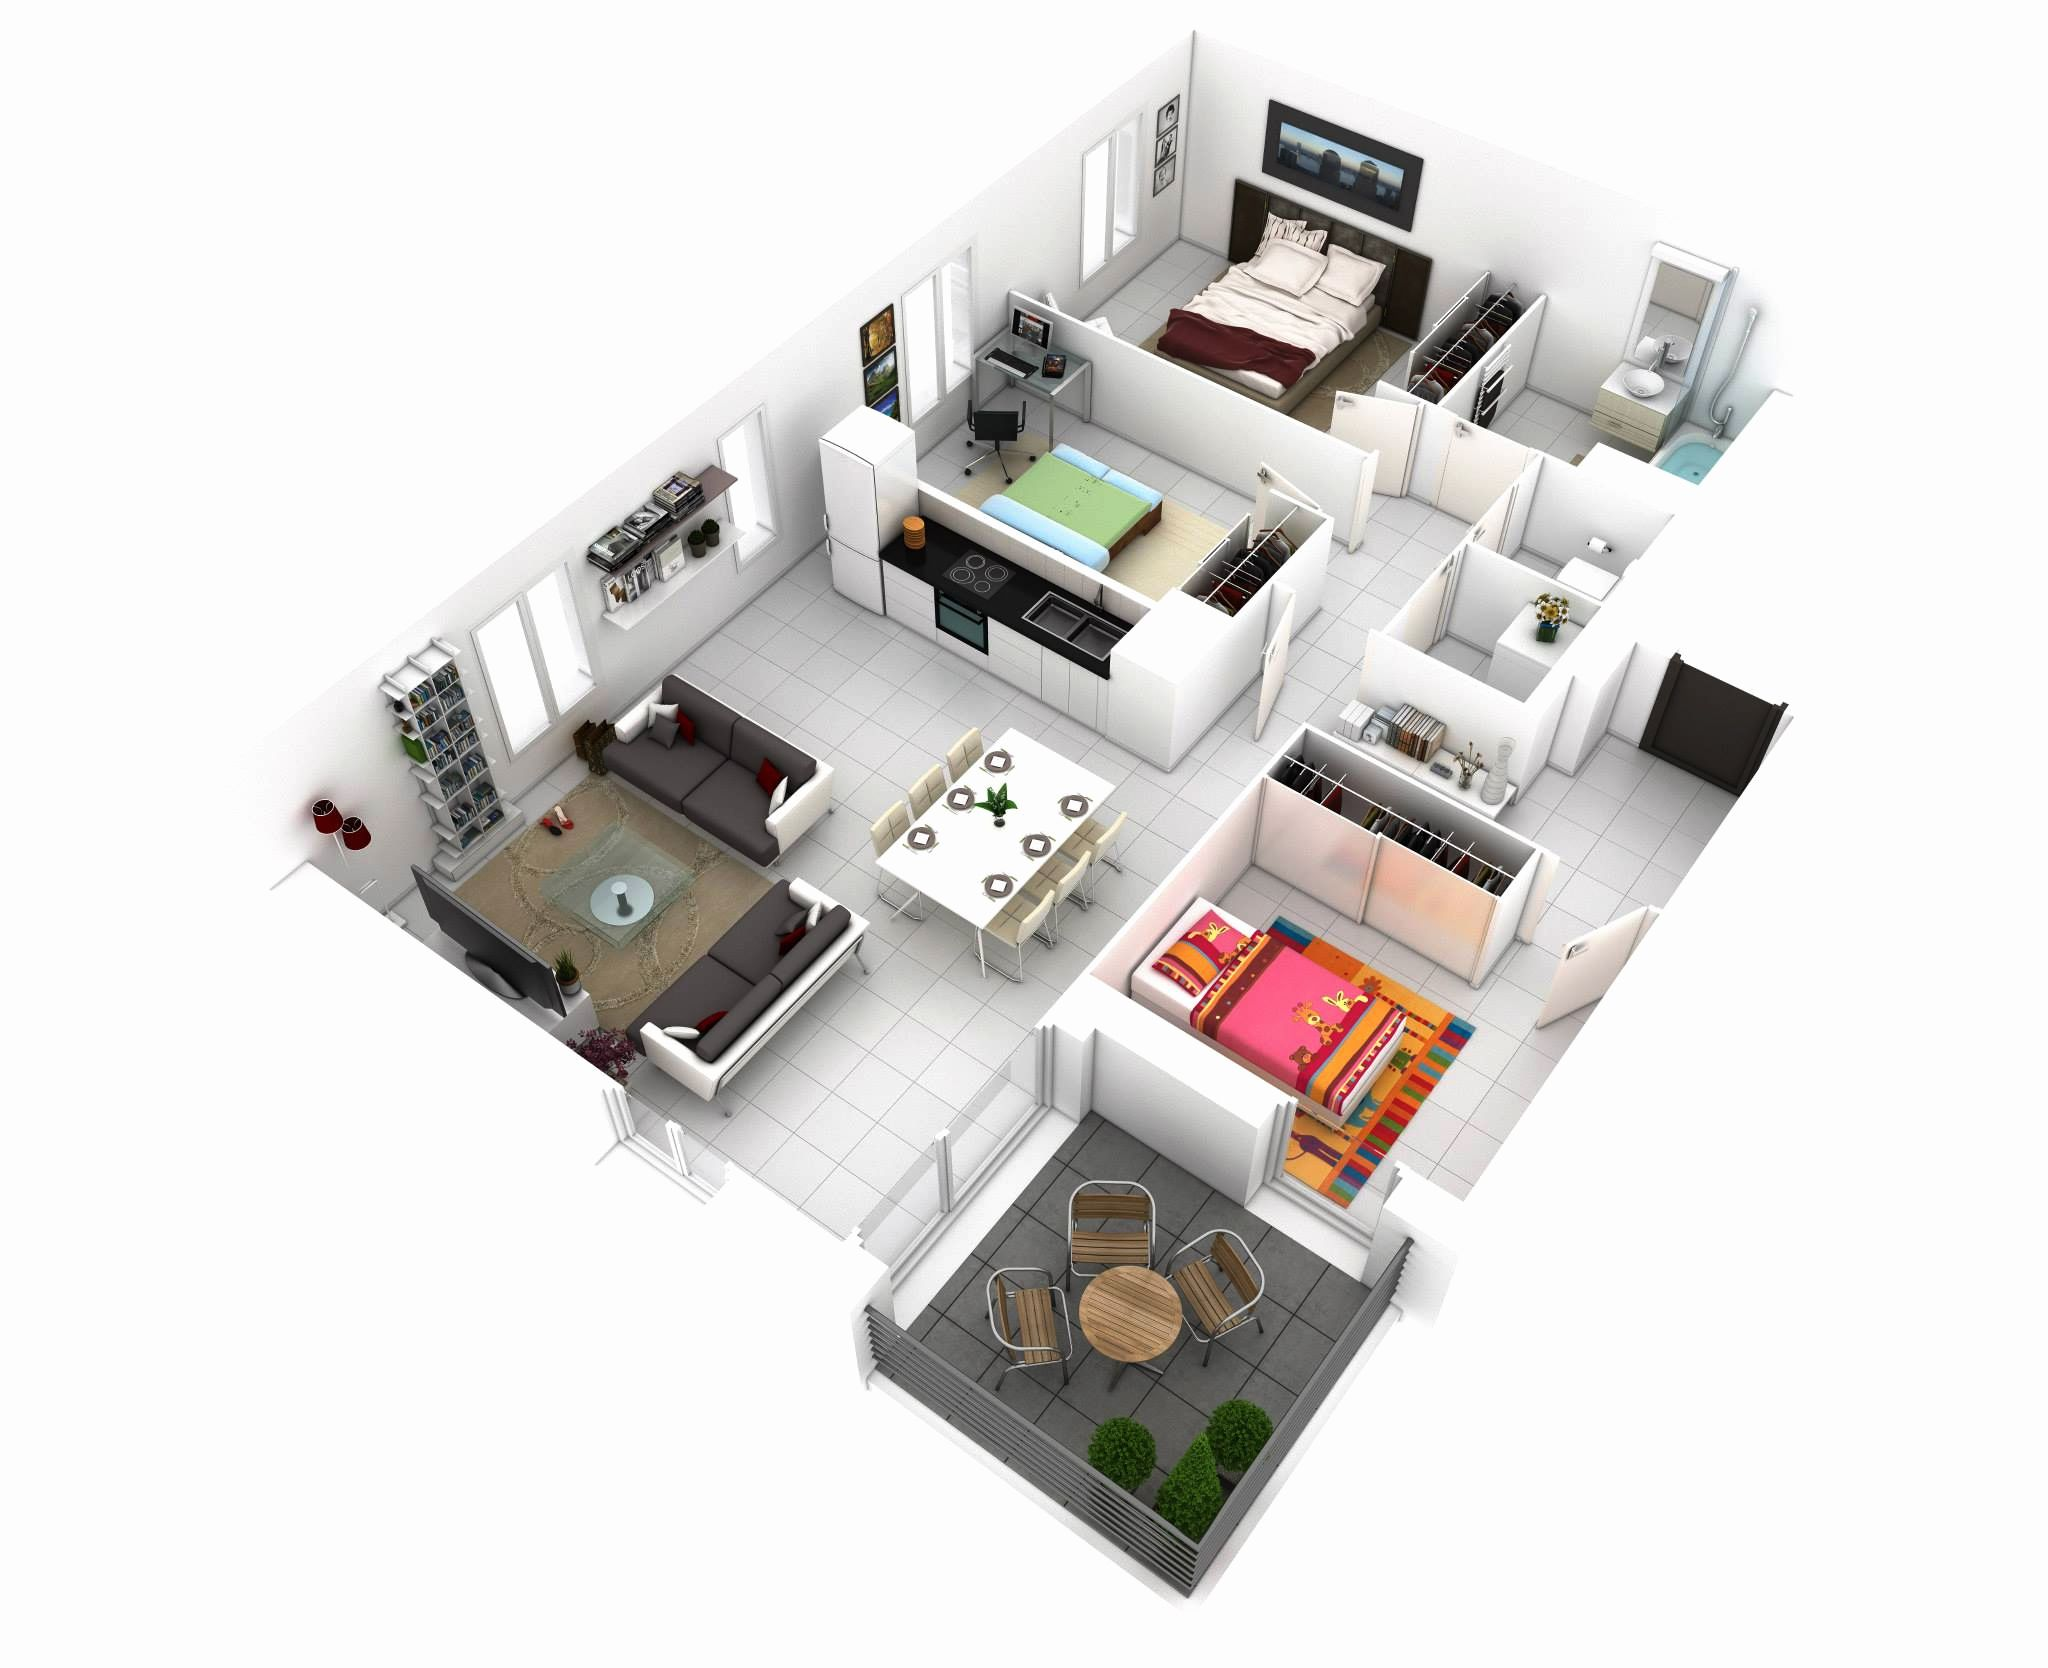 Small Three Bedroom House Plans Lovely 25 More 3 Bedroom 3d Floor Plans Small House Design Three Bedroom House Plan Bedroom House Plans